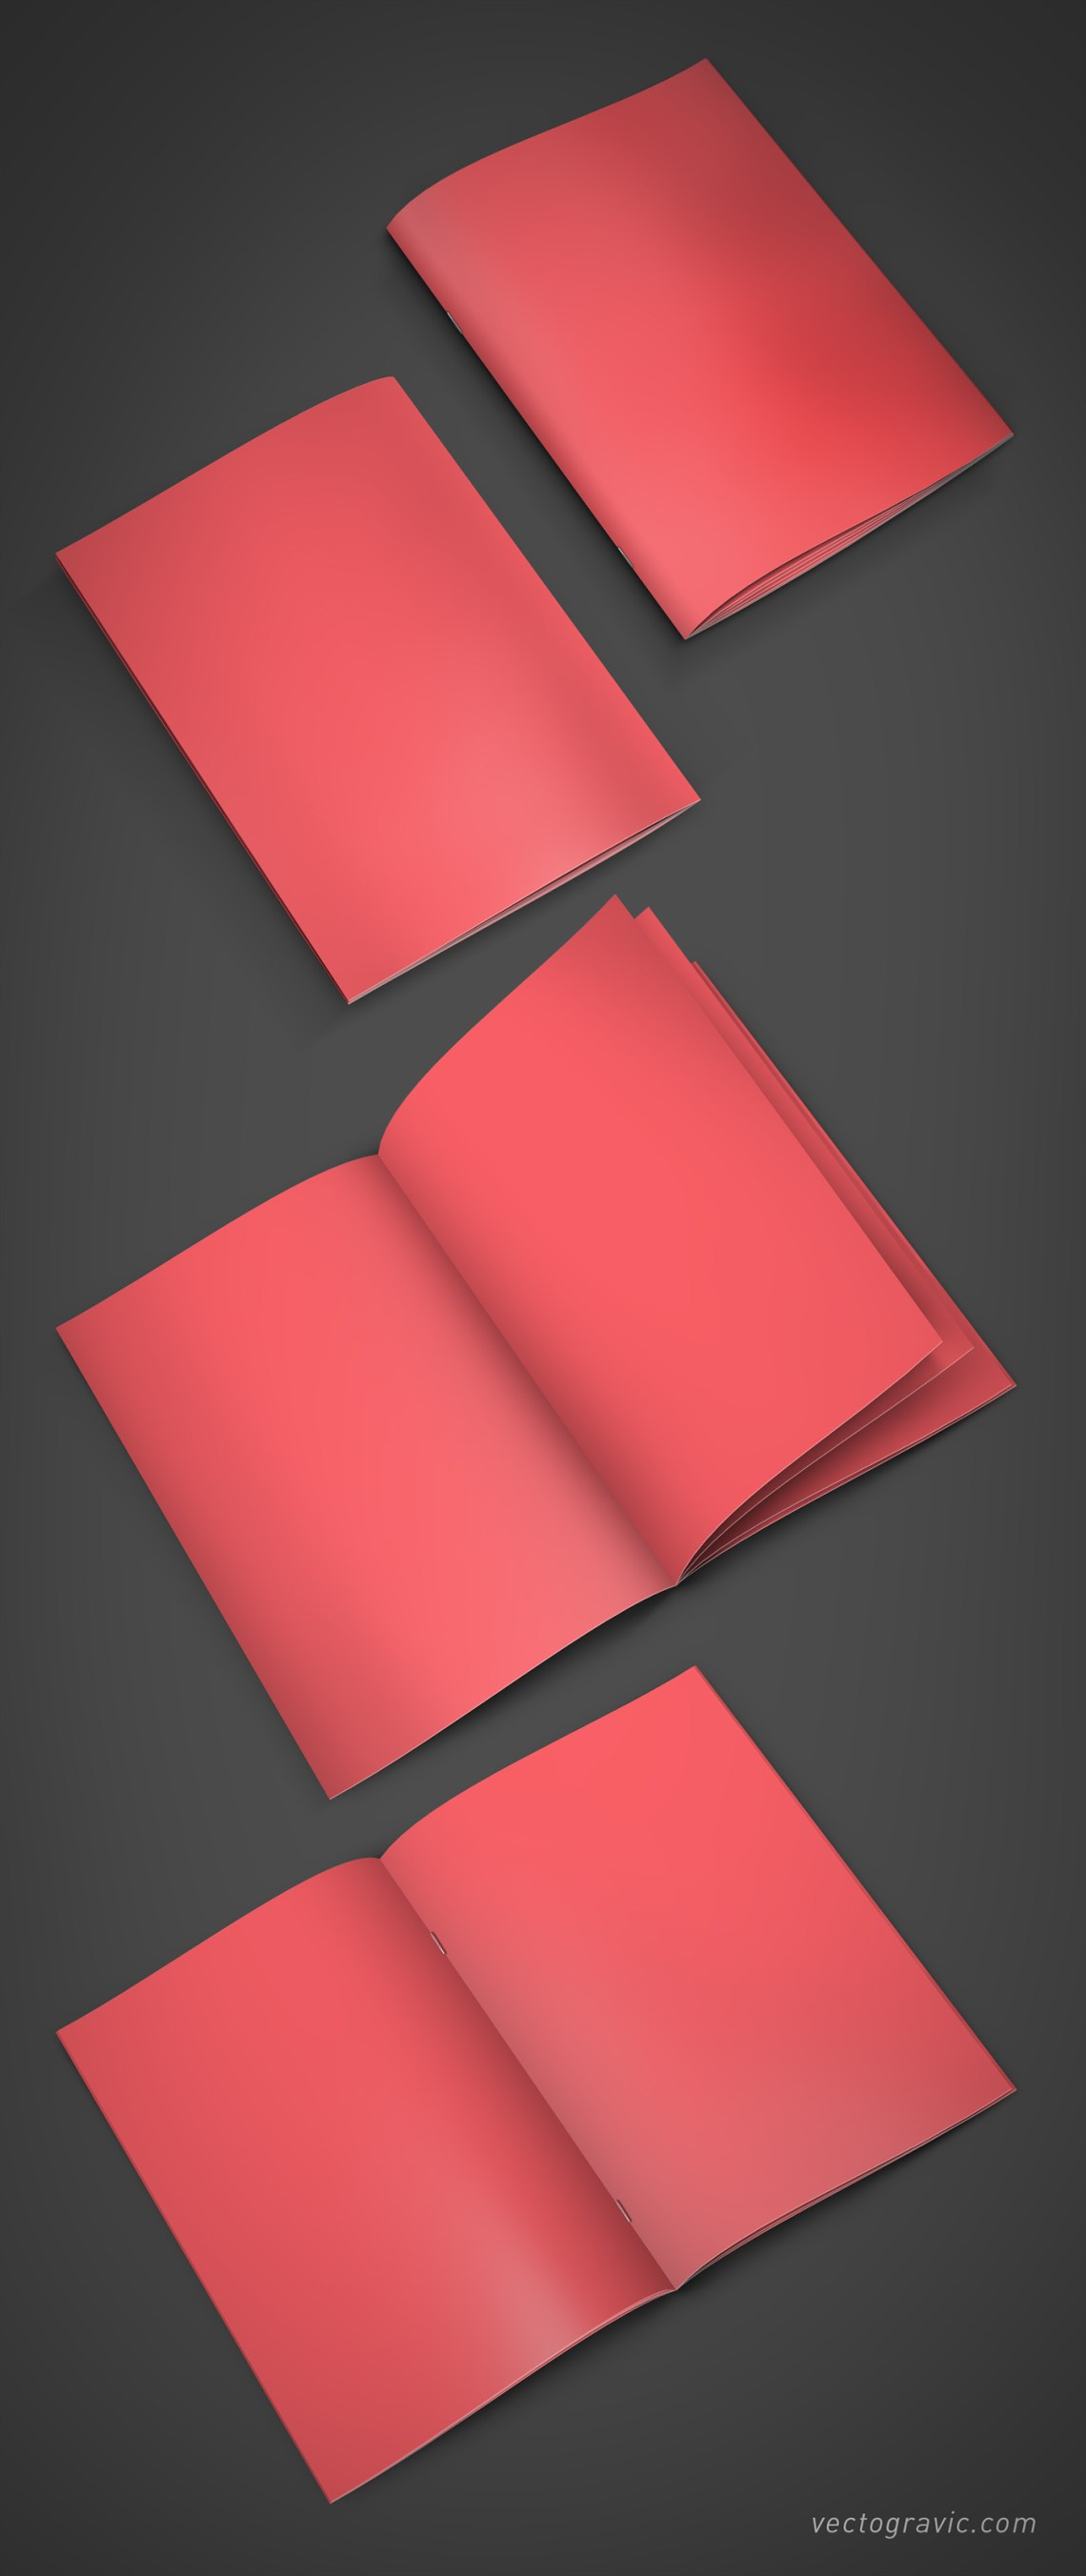 Download Free A4 Booklet Mockup - by Vectogravic on Behance